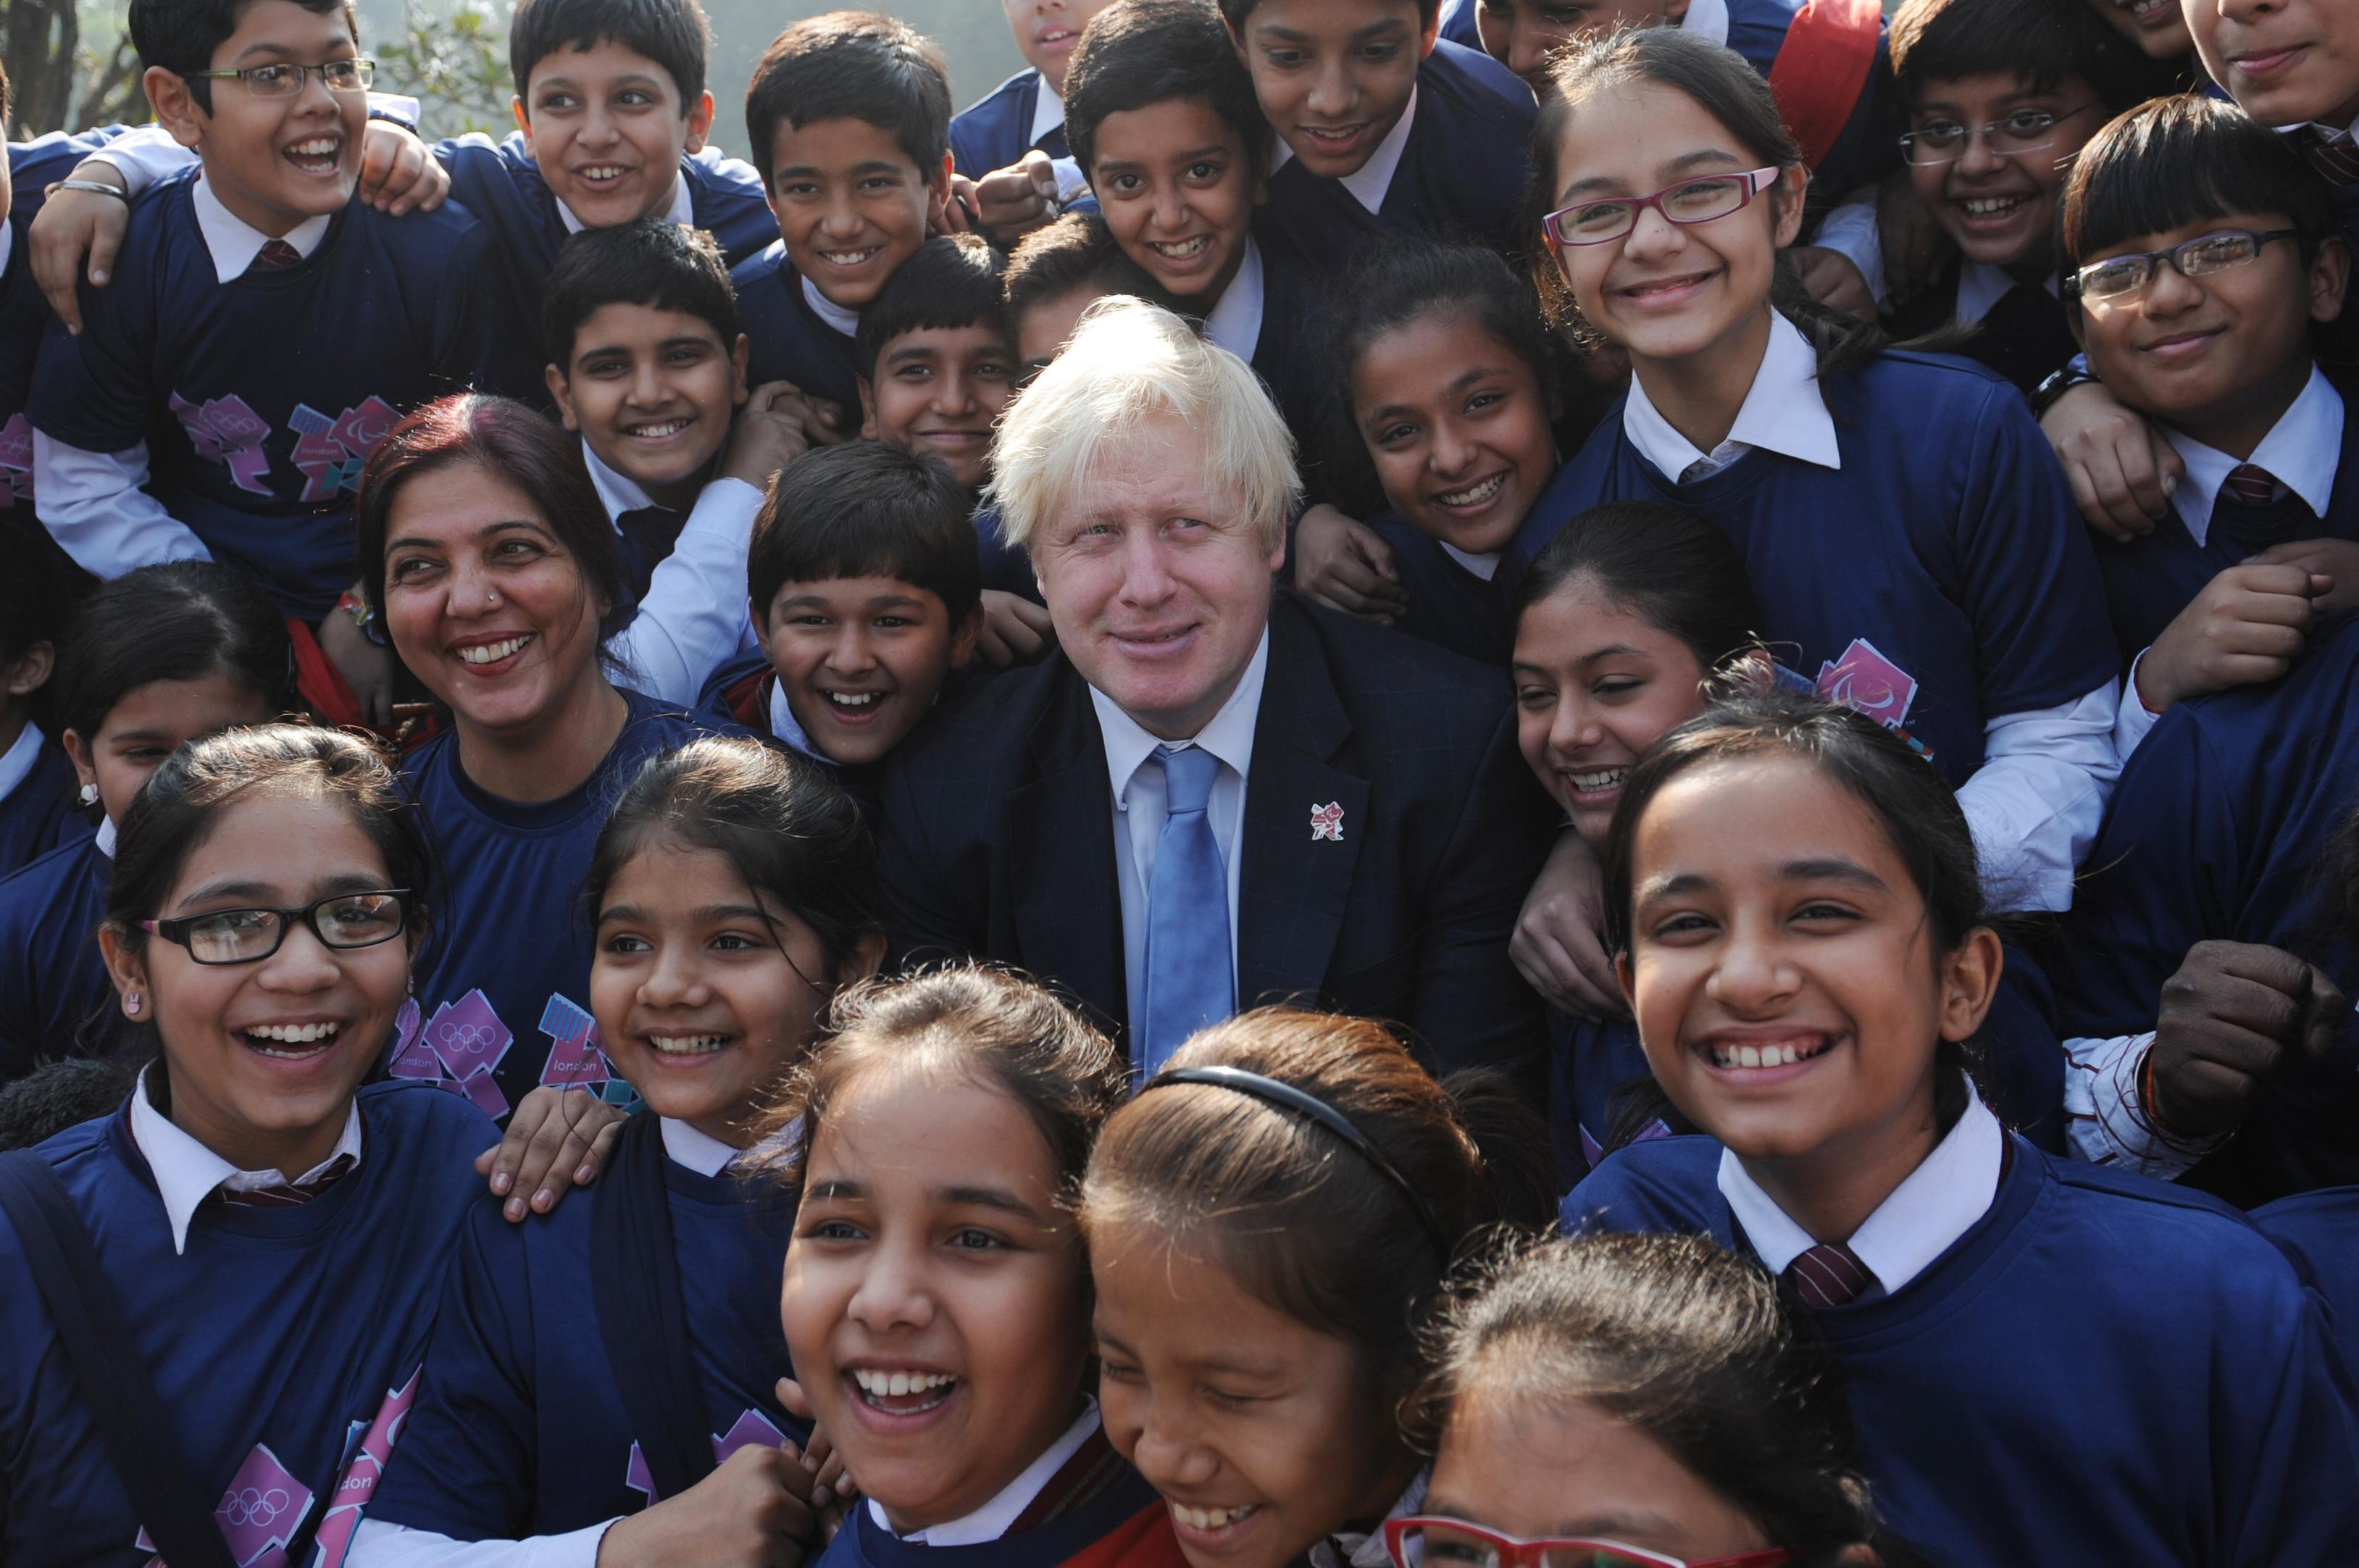 London Mayor Boris Johnson is mobbed by school children in Delhi today after he handed over the London 2012 Olympic cauldron petals to Indian Olympians. The petals which were part of the Thomas Heatherwick designed cauldron which burnt throughout the Olympic and Paralympic Games will be given to every competing nation.